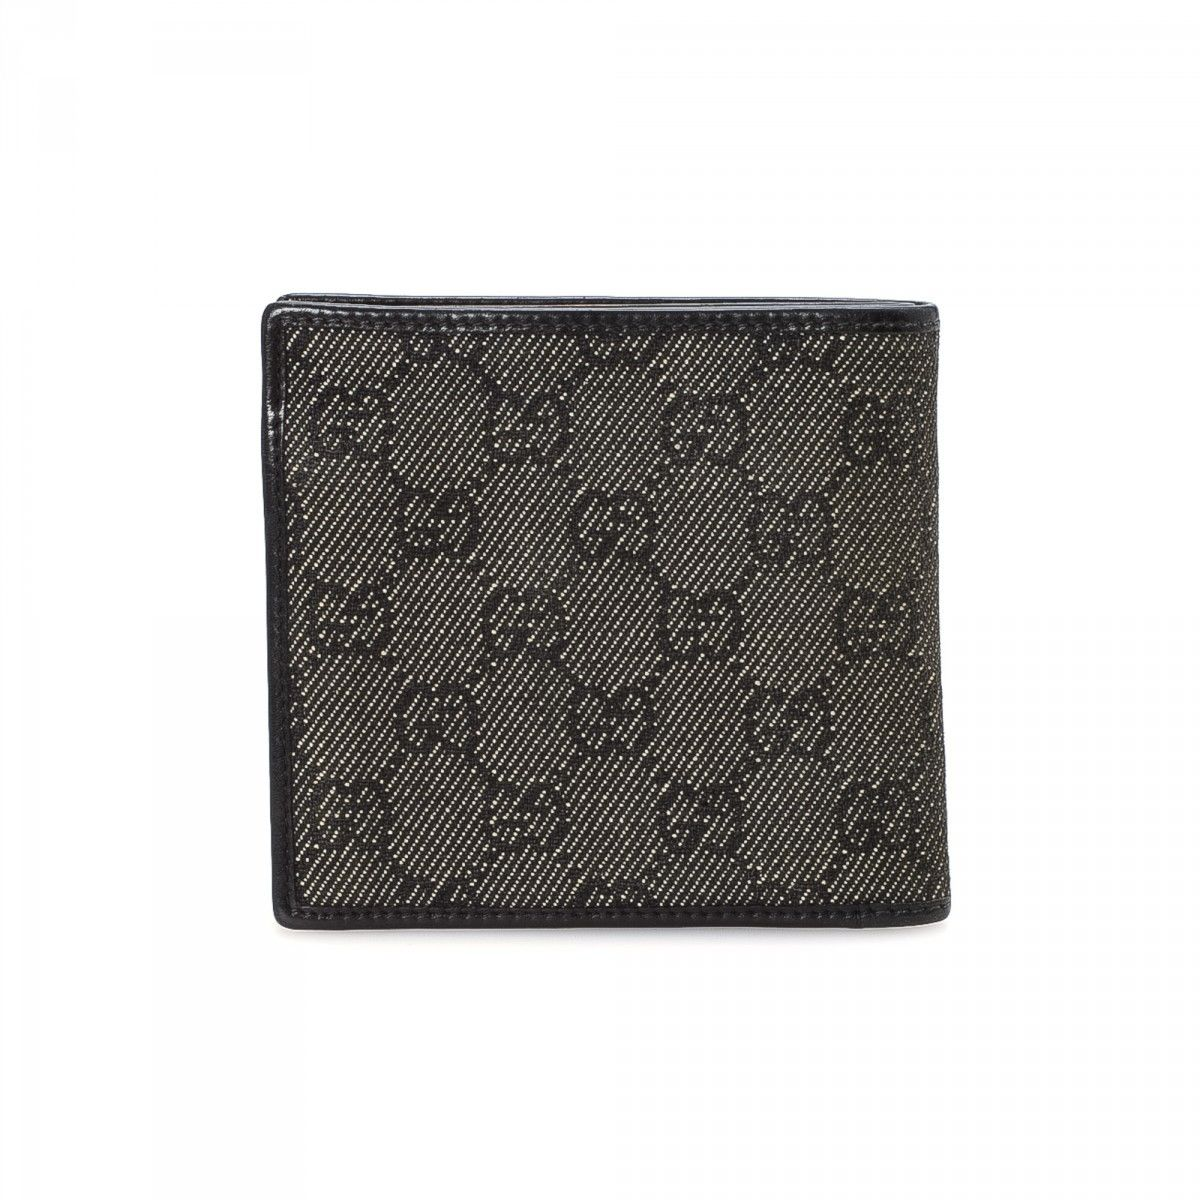 de50edcd3fda Gucci Compact Wallet ราคา | Stanford Center for Opportunity Policy ...